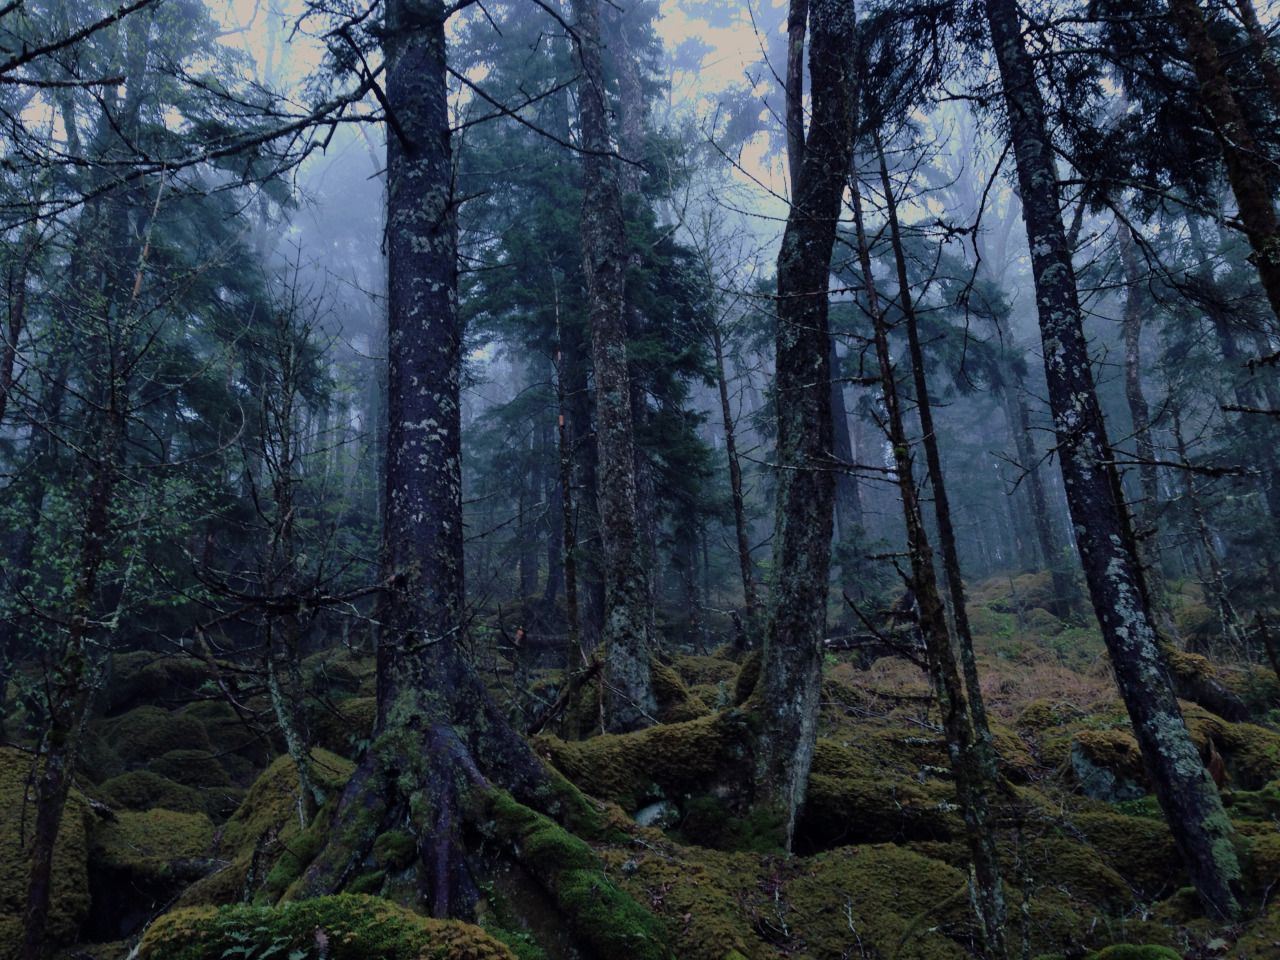 Regnum Satyri Haunted Forest Foggy Forest Beautiful Nature Dawn forest deer trees fog nature